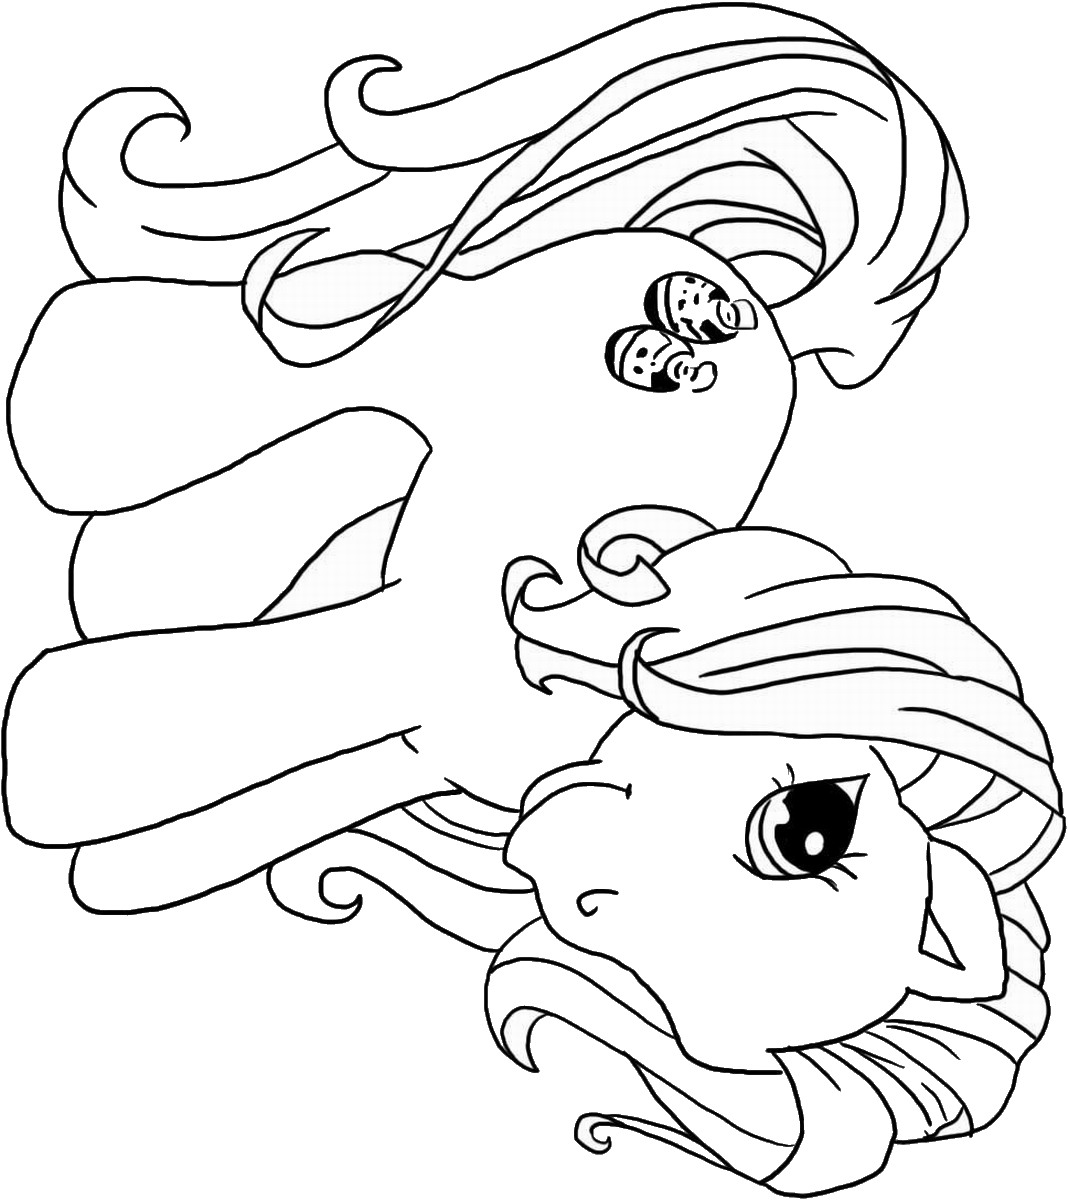 my little pony print out coloring pages top 30 my little pony coloring pages printable coloring print pages out my little pony